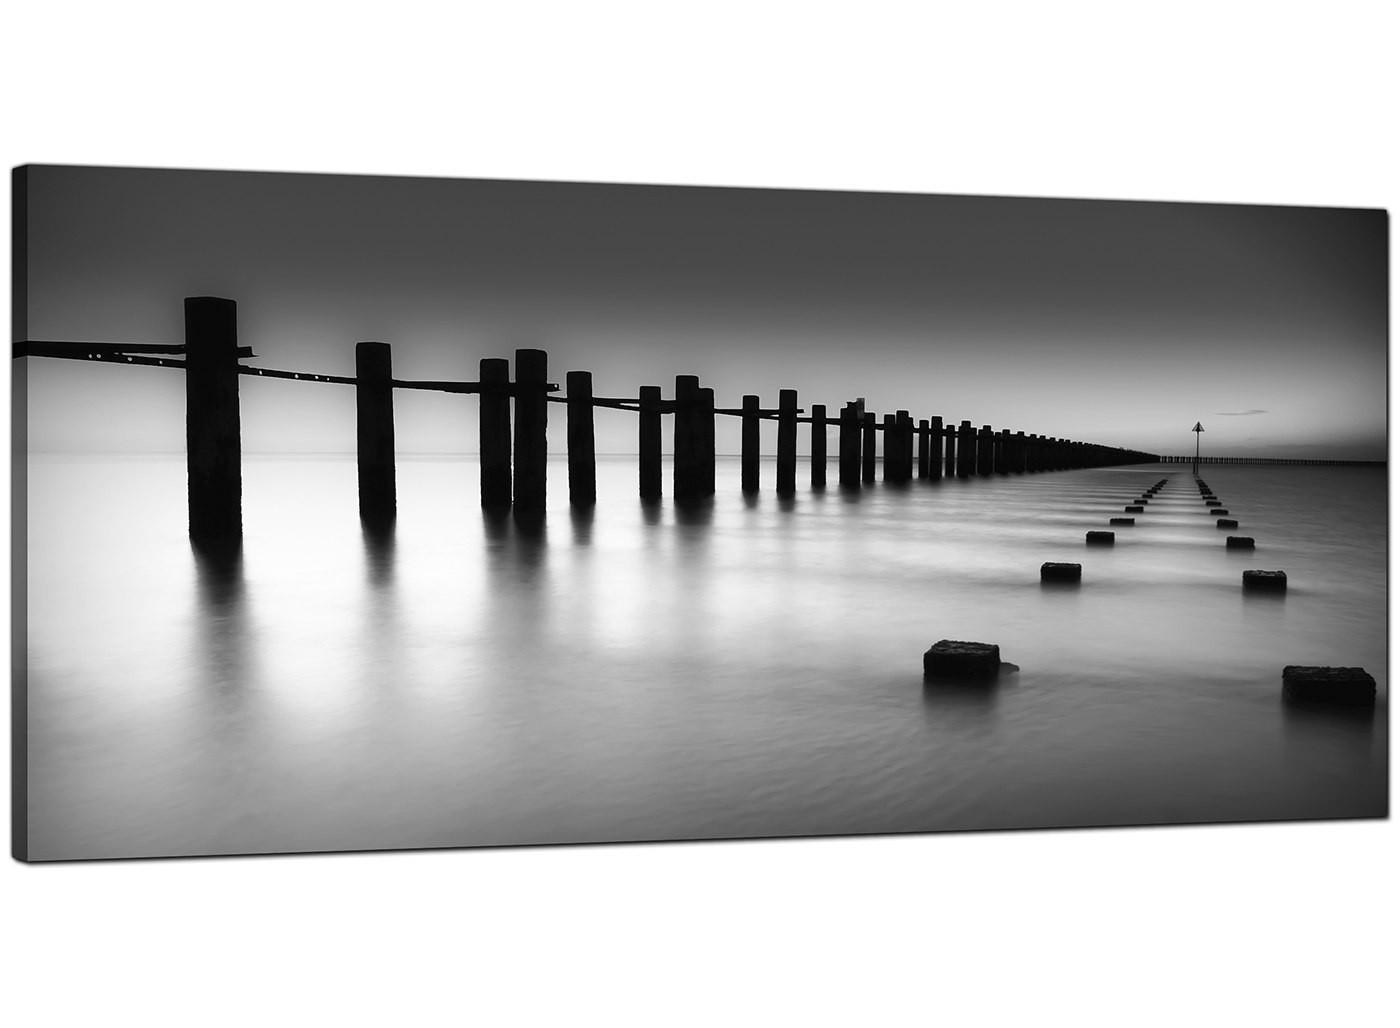 Modern Black And White Canvas Art Of The Sea With Regard To Large Black And White Wall Art (Image 14 of 20)